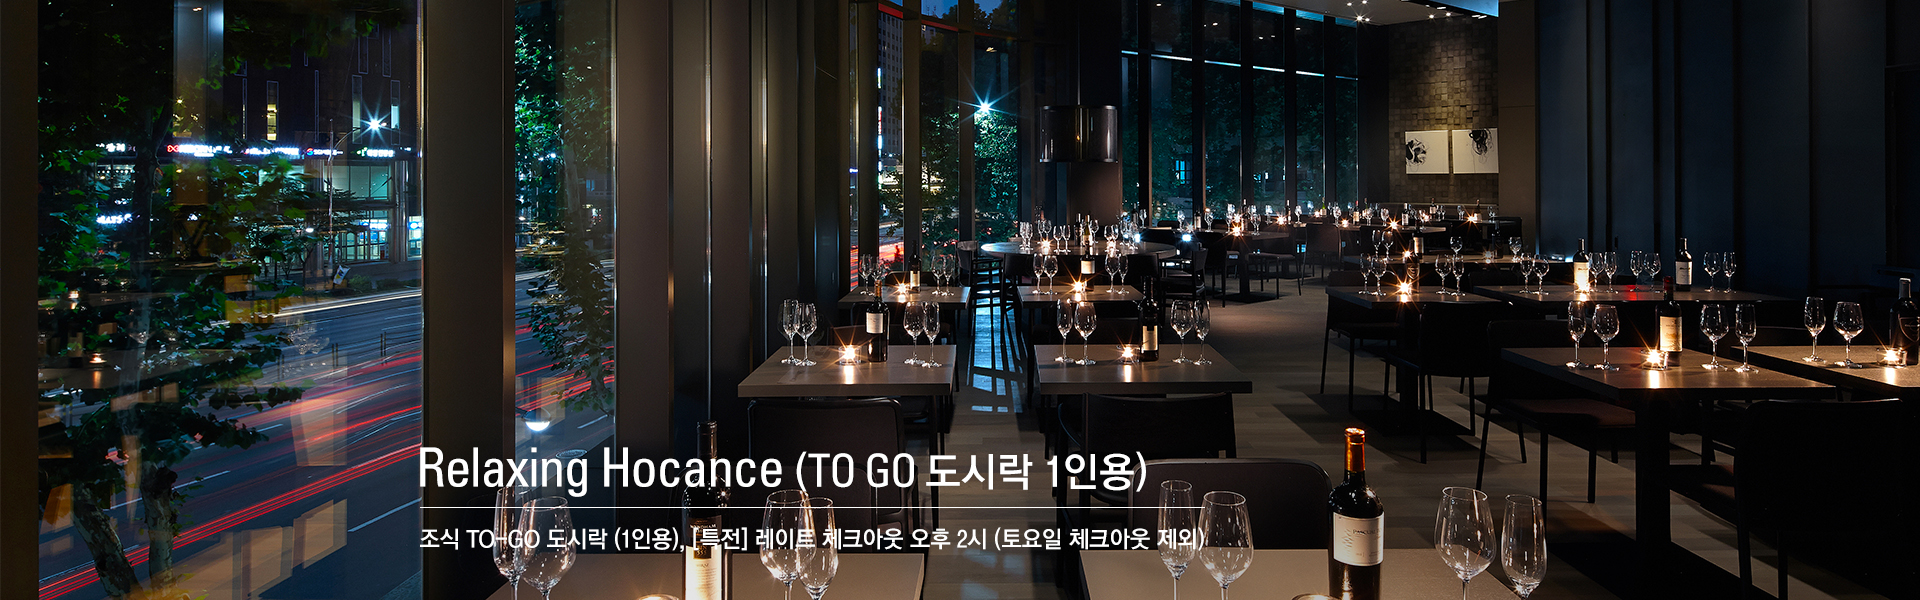 Relaxing Hocance (TO-GO 도시락 1인용)